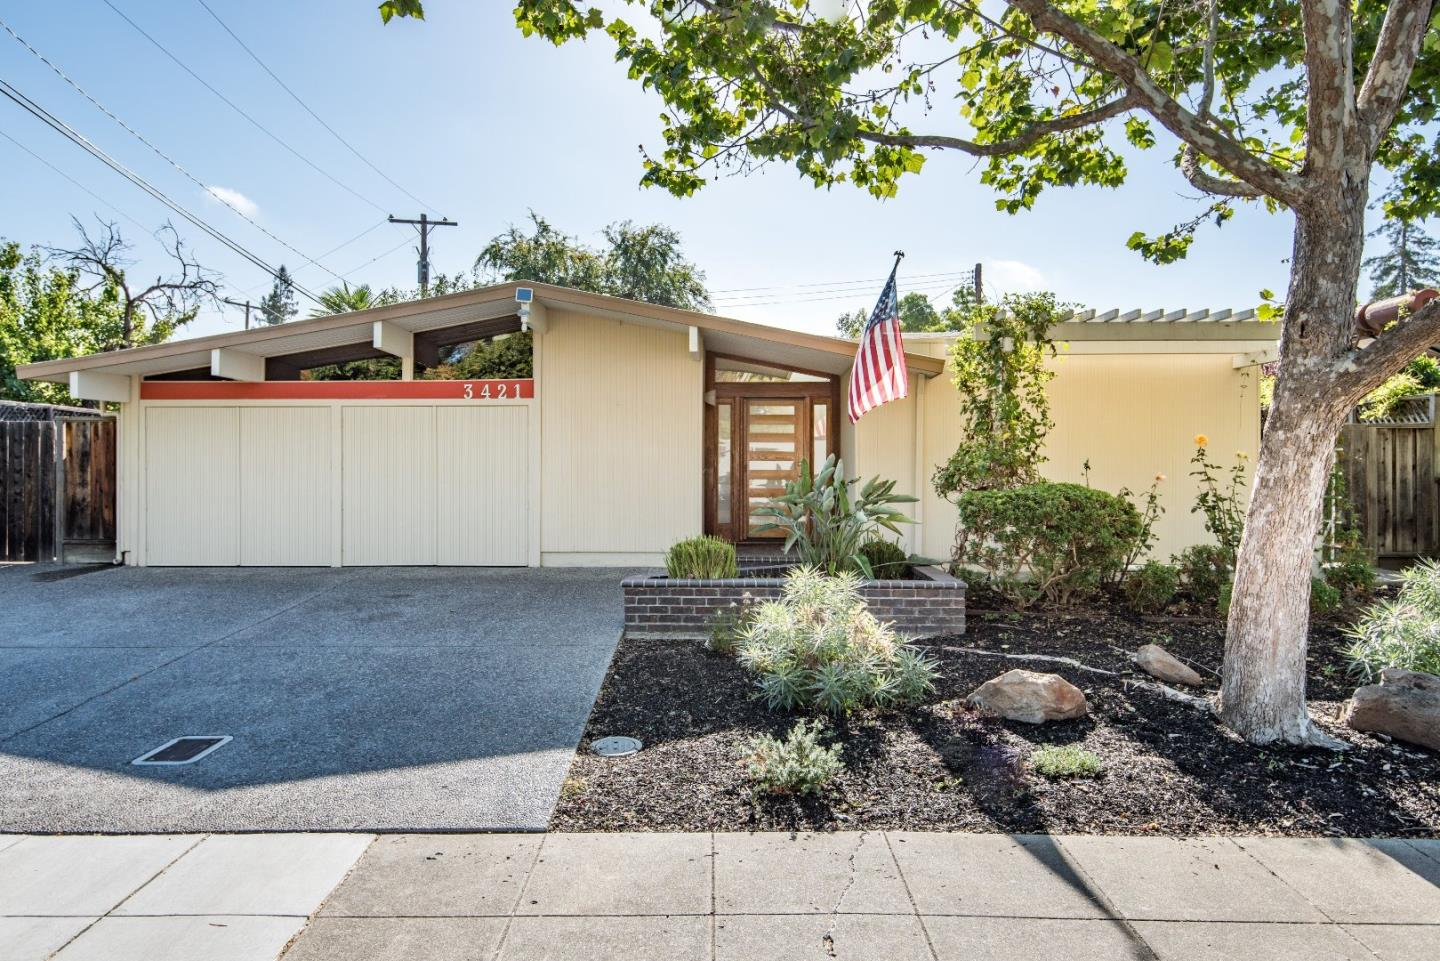 Sold 3421 Greer Rd Palo Alto 94303 Eichler Homes Realty